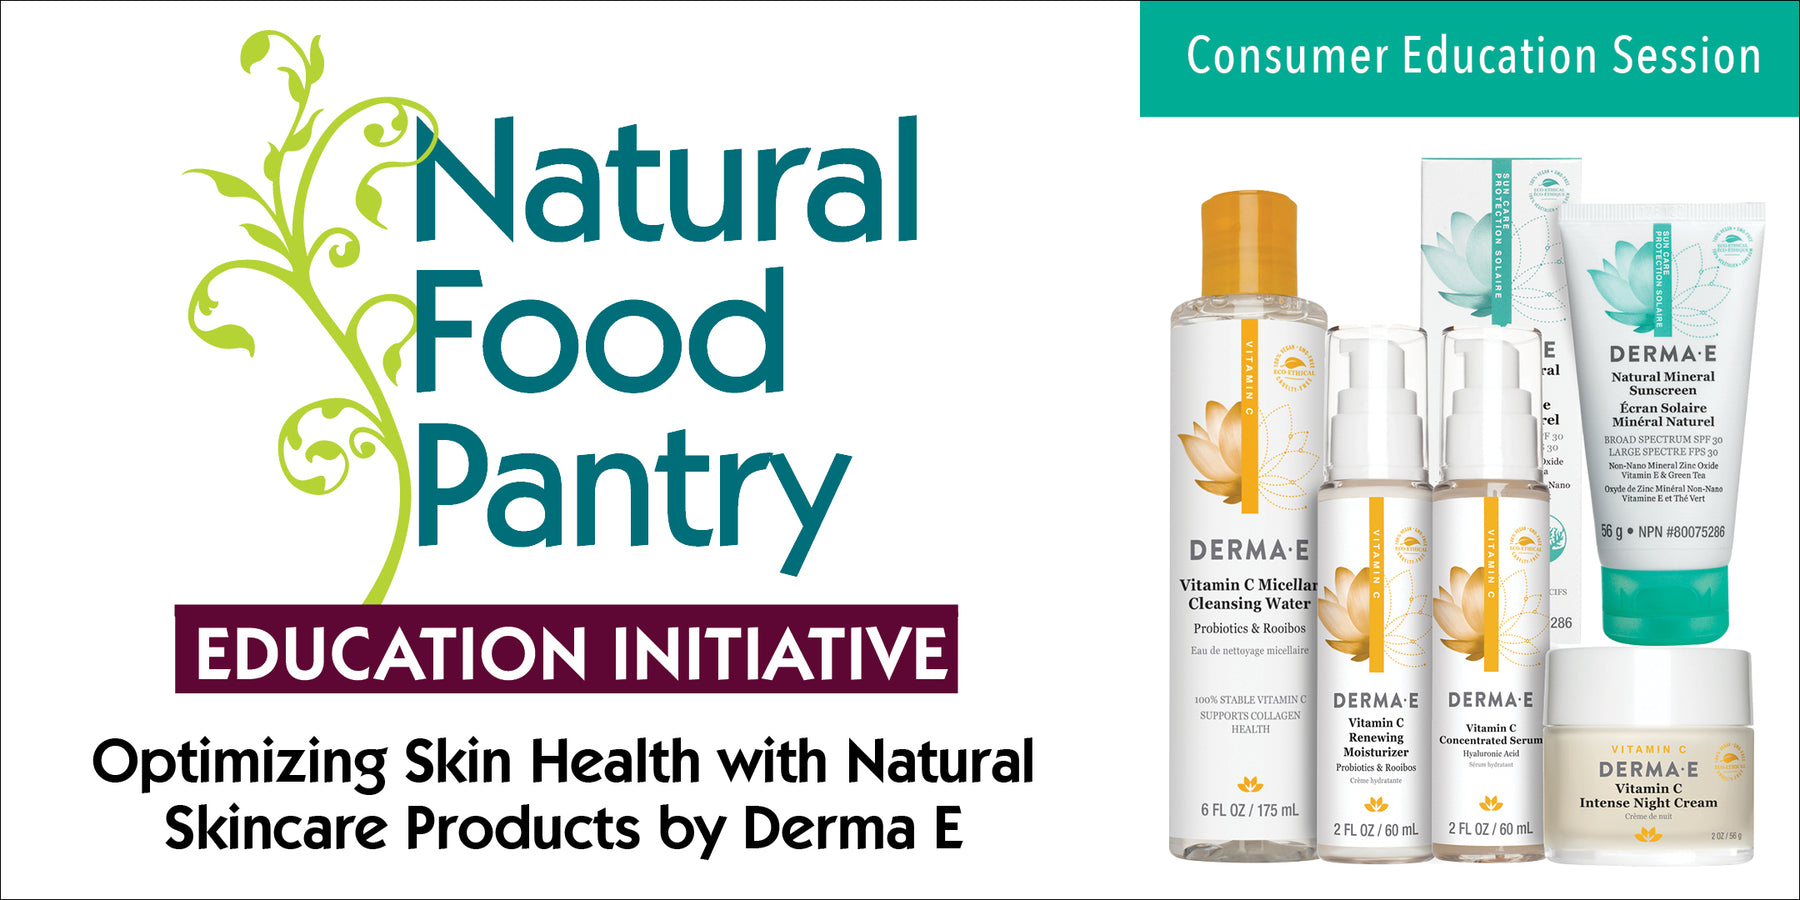 May 8: Optimizing Skin Health with Derma E Natural Skincare Products